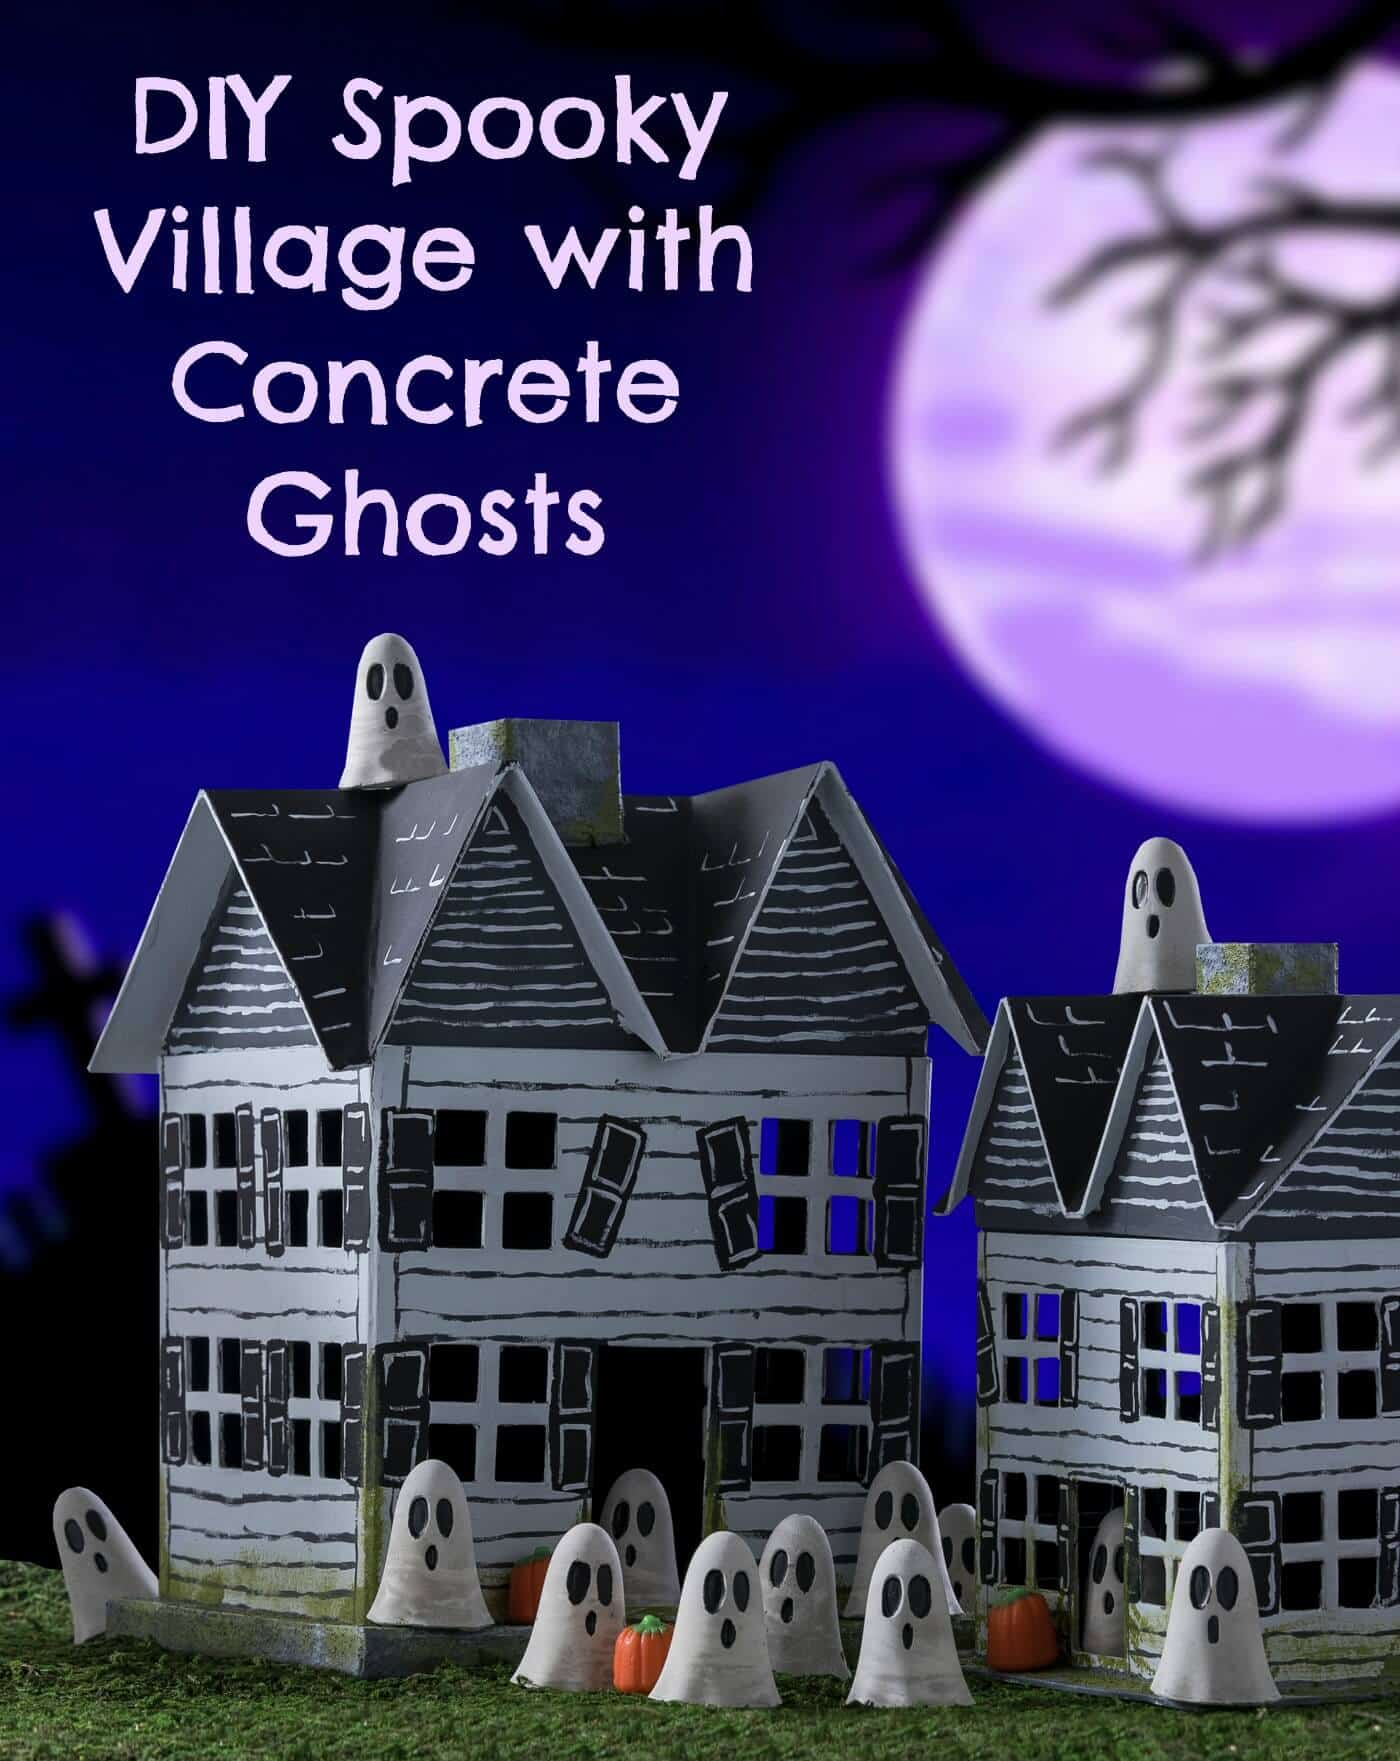 Use Quikcrete, paper mache houses, acrylic paint, and a few other supplies to create a spooky village for Halloween! Kids will love to participate too.